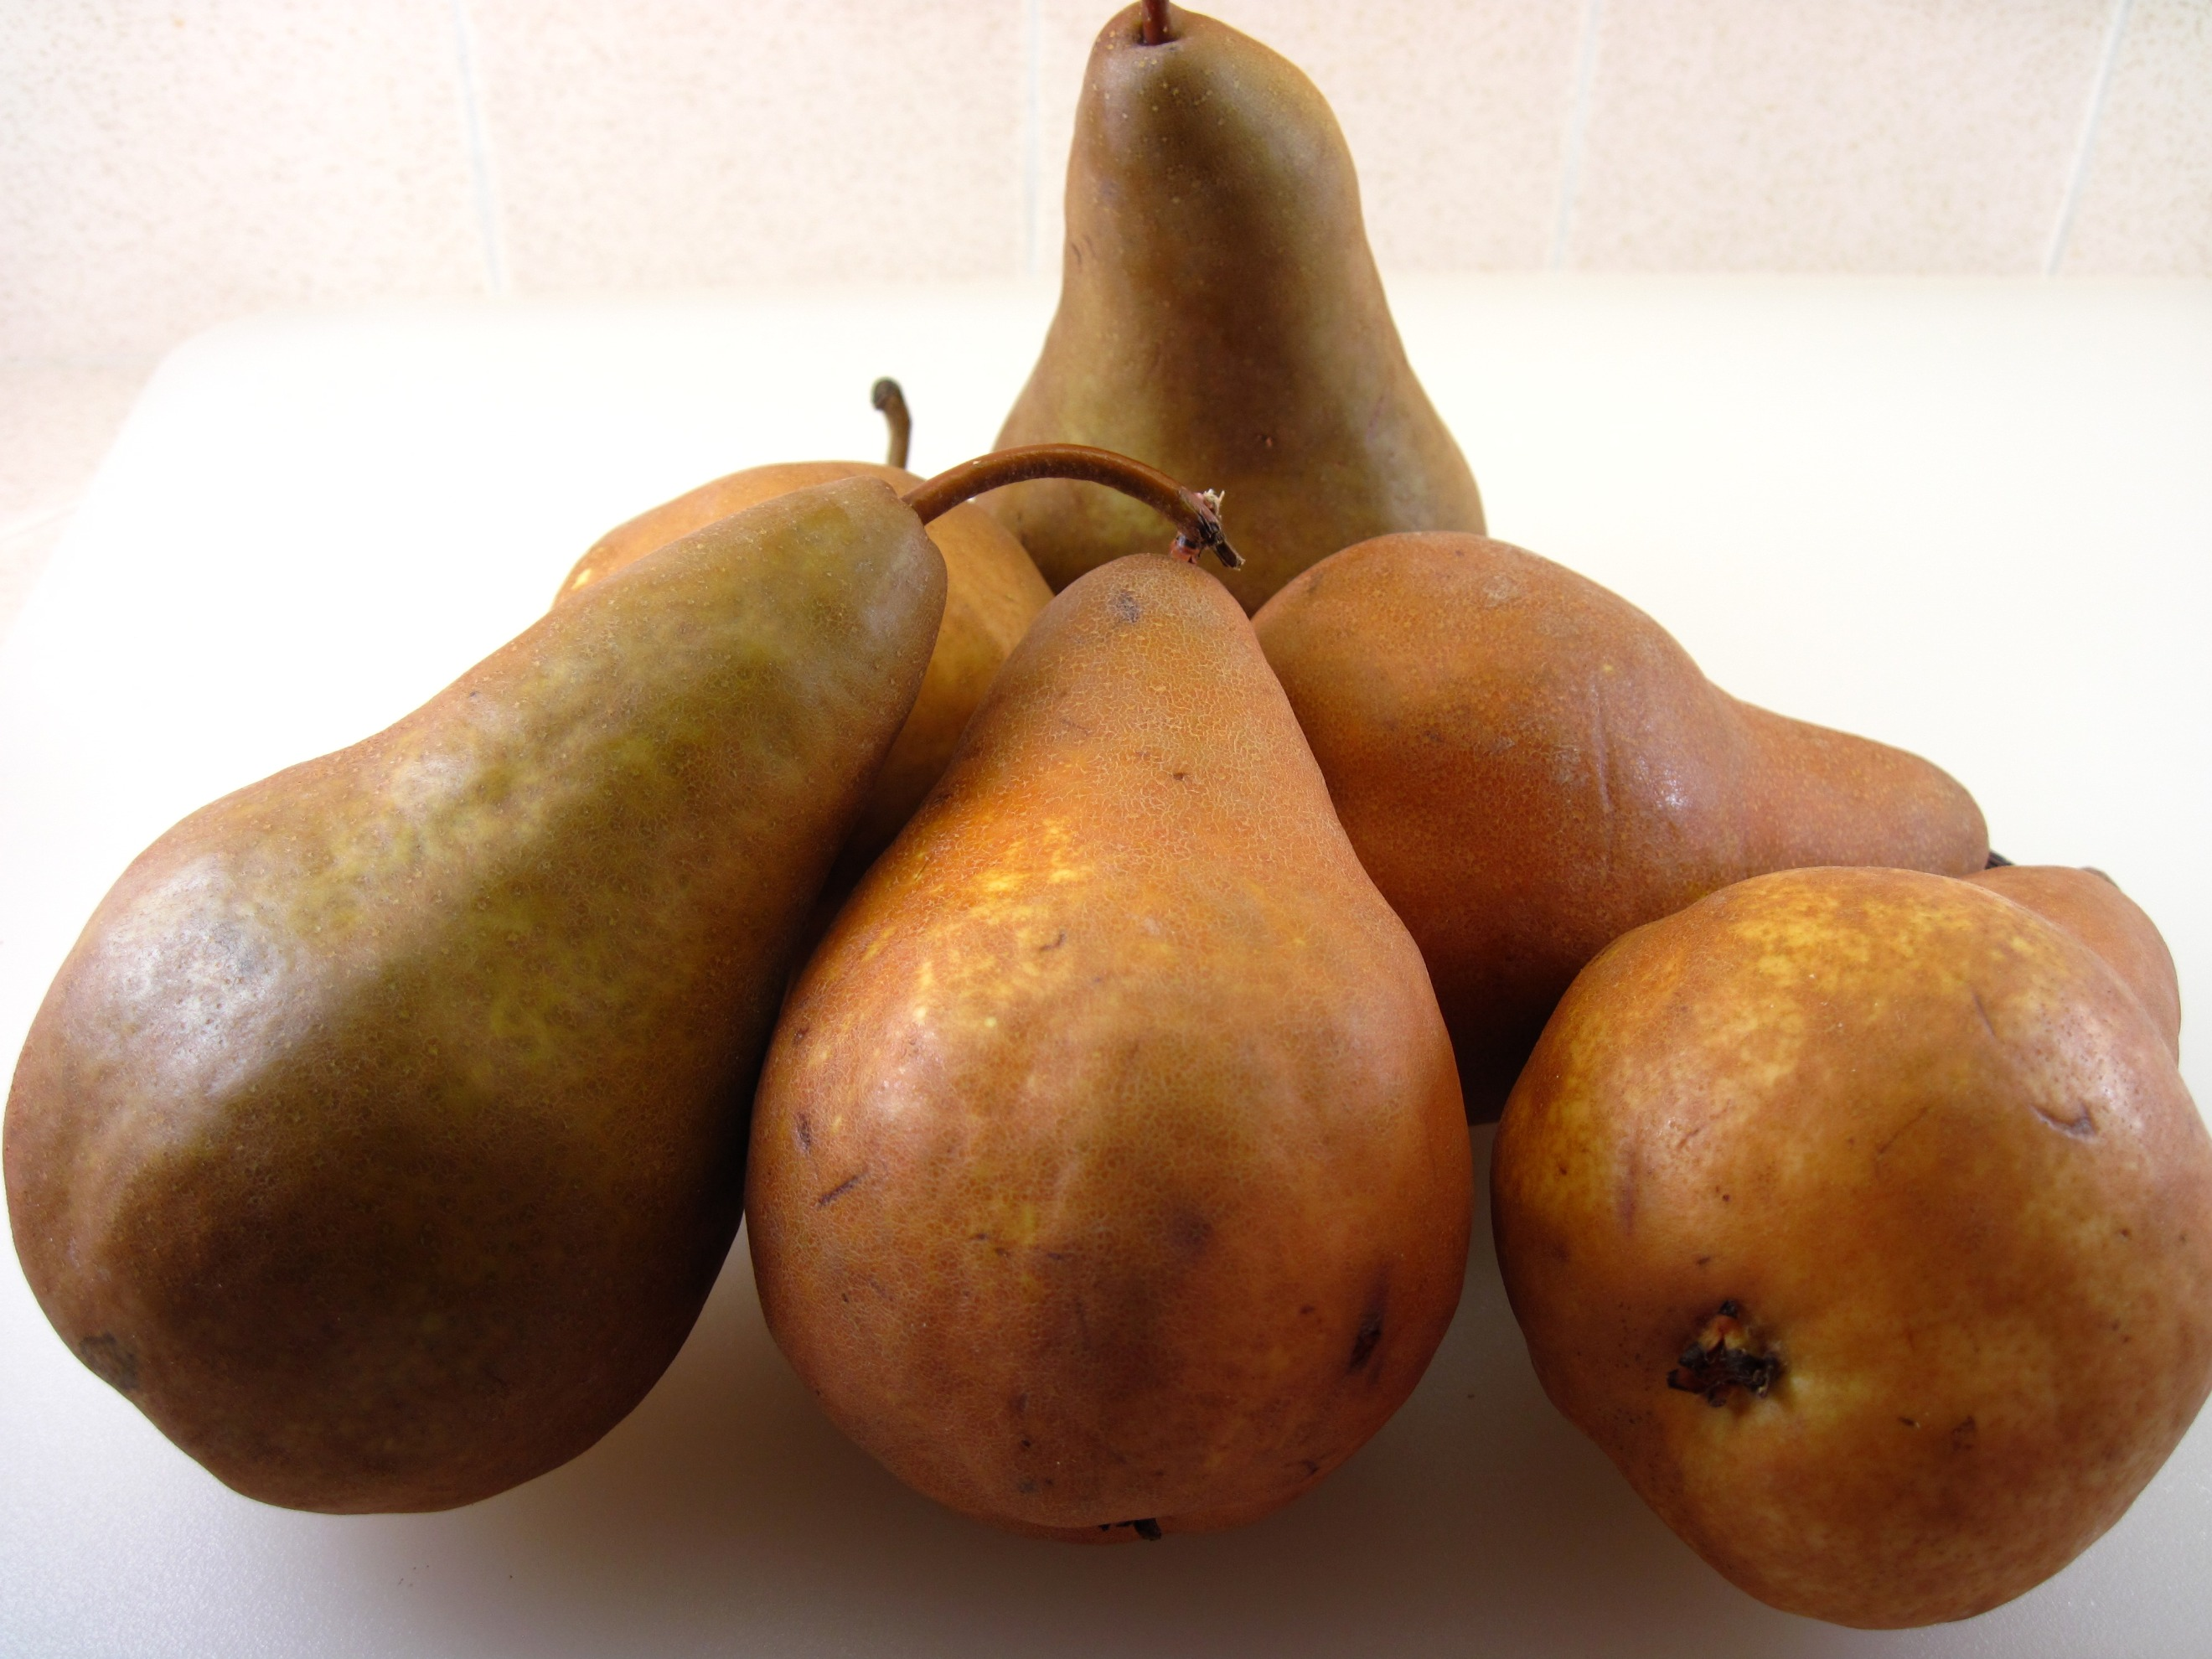 How to Core a Pear